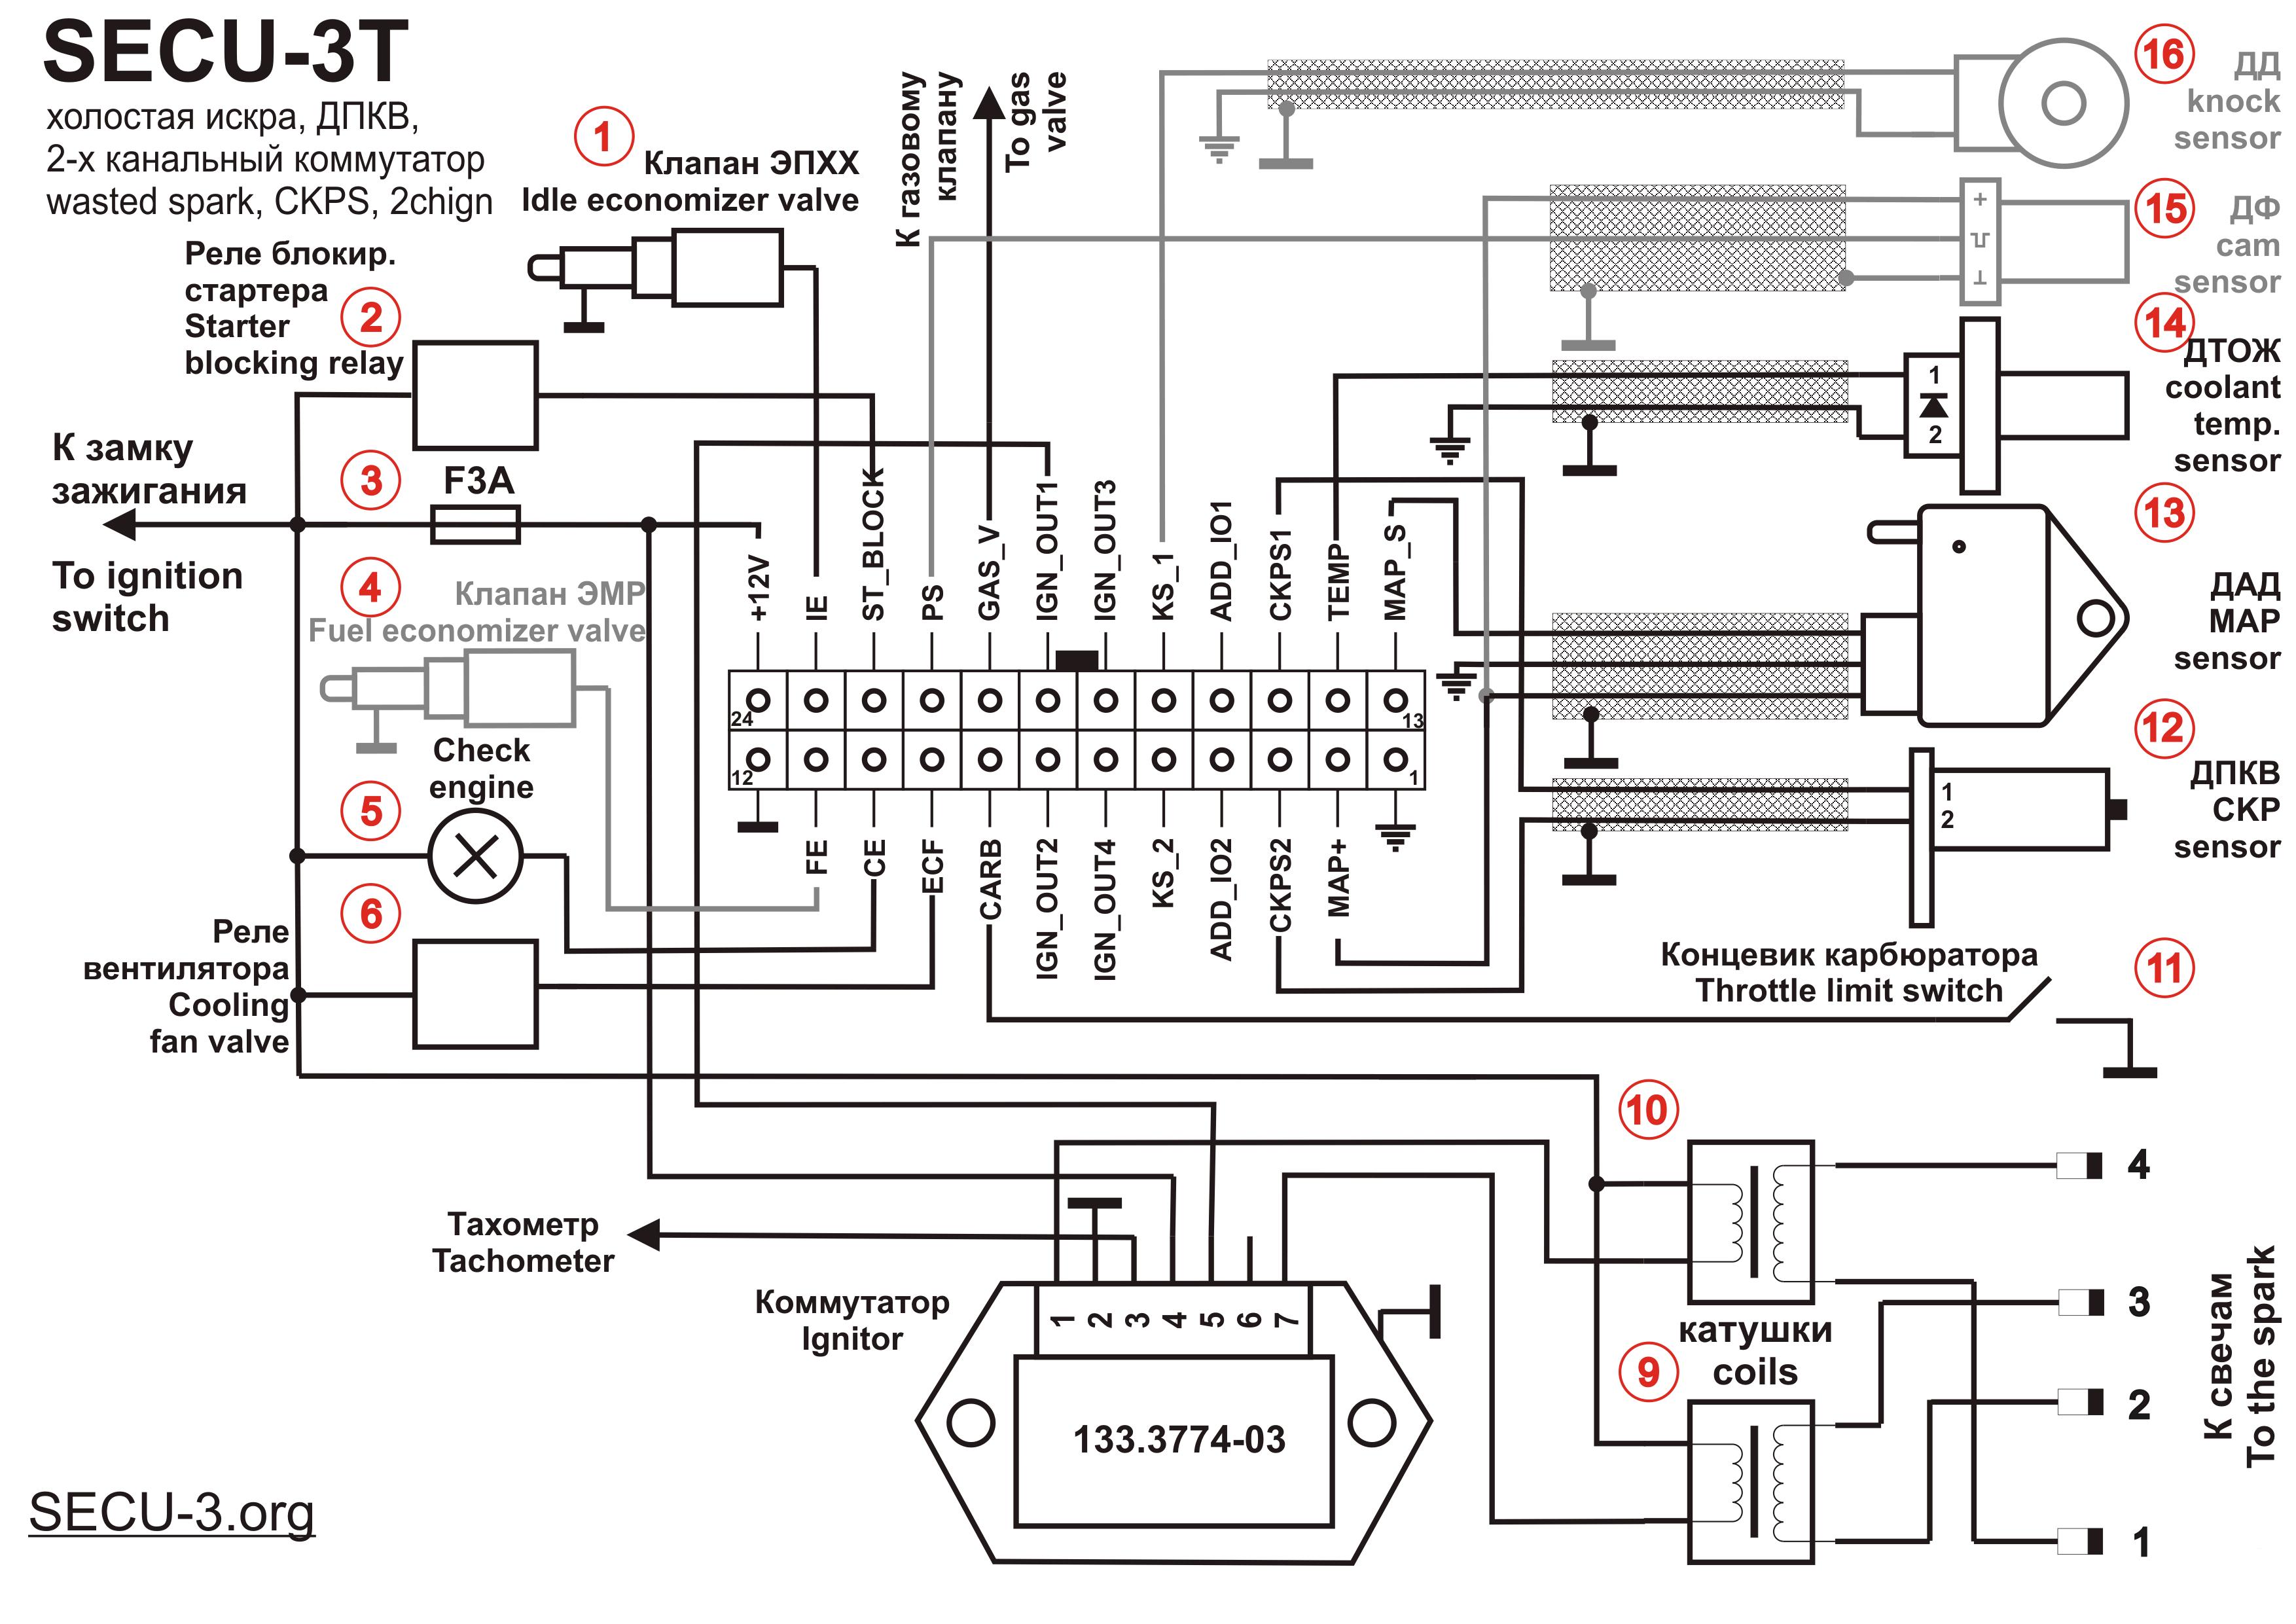 wiring diagrams for secu-3t  24 pins connector